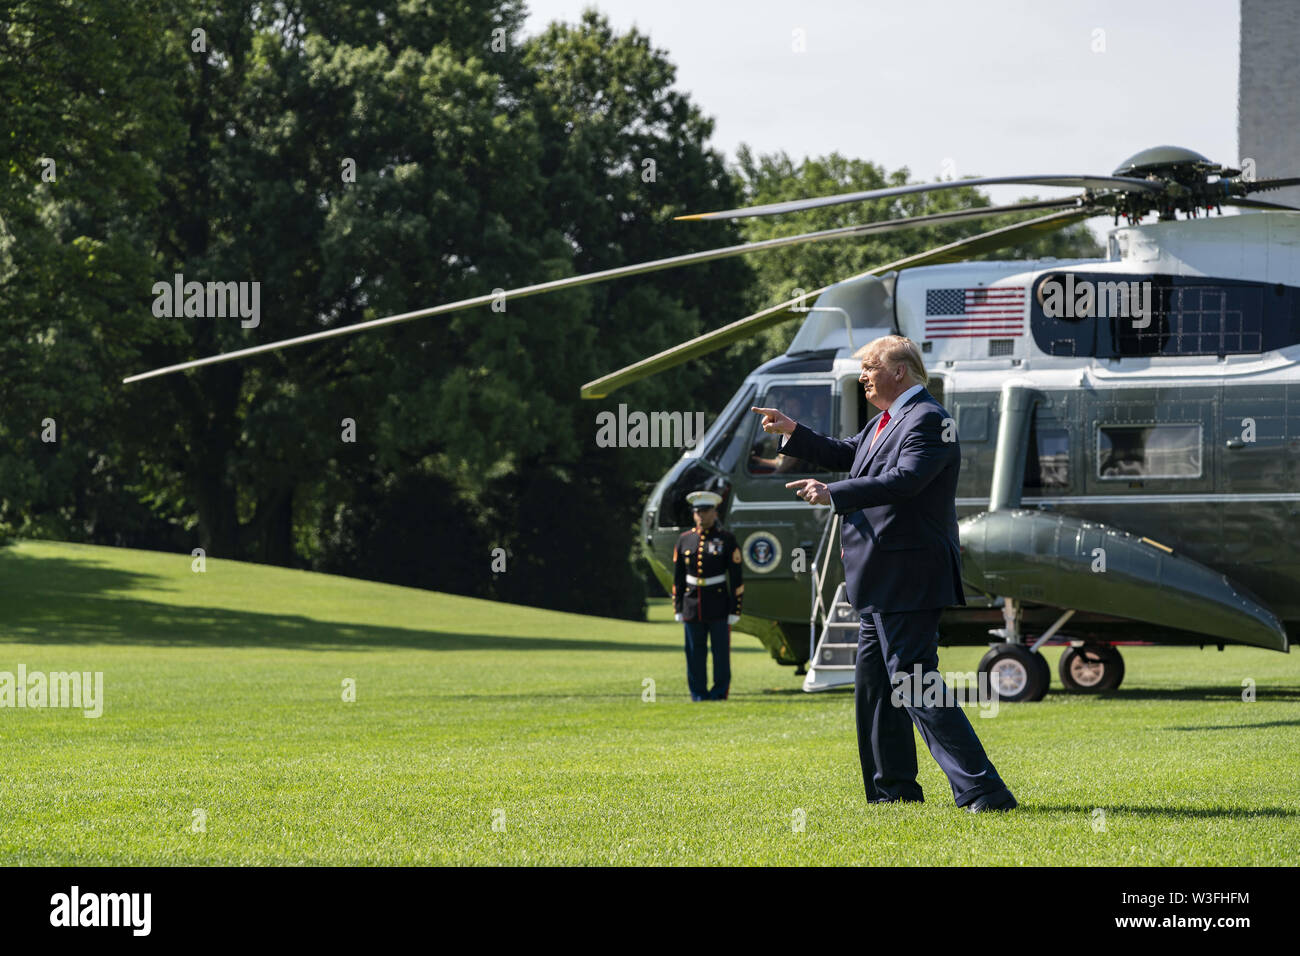 Washington, District of Columbia, USA. 12th July, 2019. U.S. President Donald Trump gestures to White House visitors as departs the White House aboard Marine One on Friday, July 12, 2019 Credit: Alex Edelman/ZUMA Wire/Alamy Live News - Stock Image